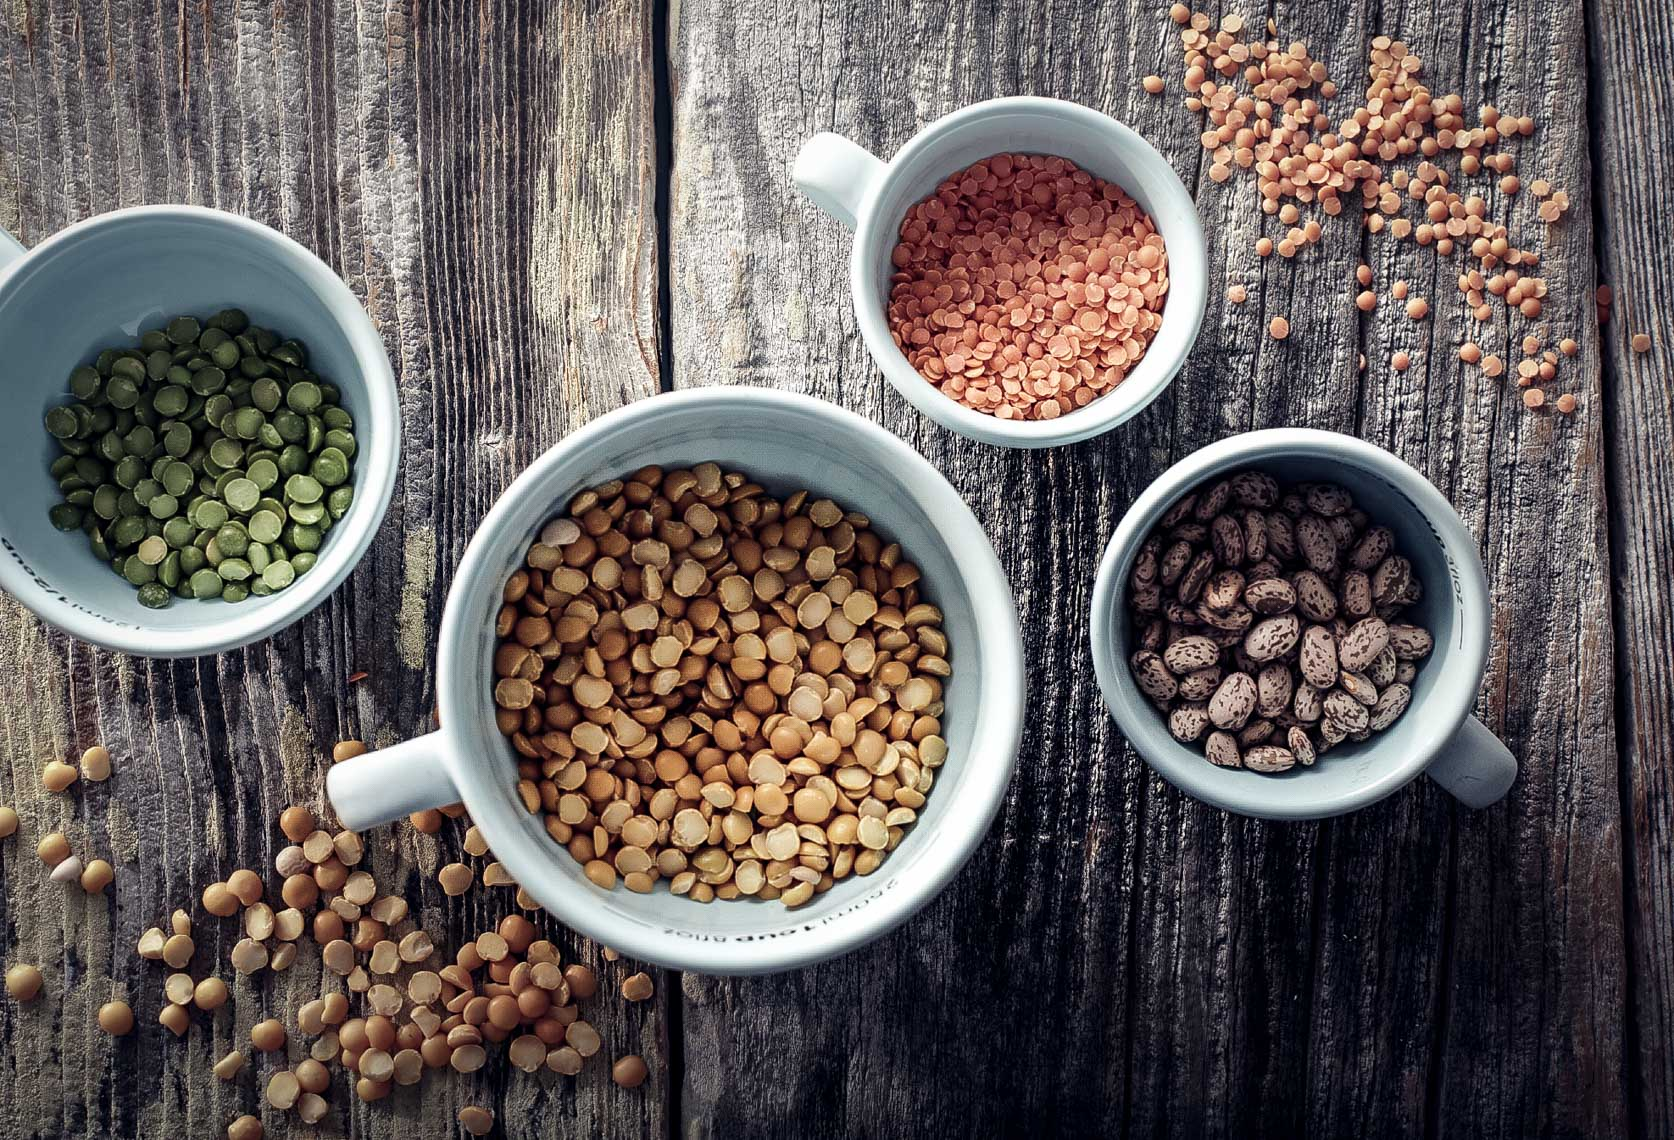 white mugs with assortment of beans and seeds